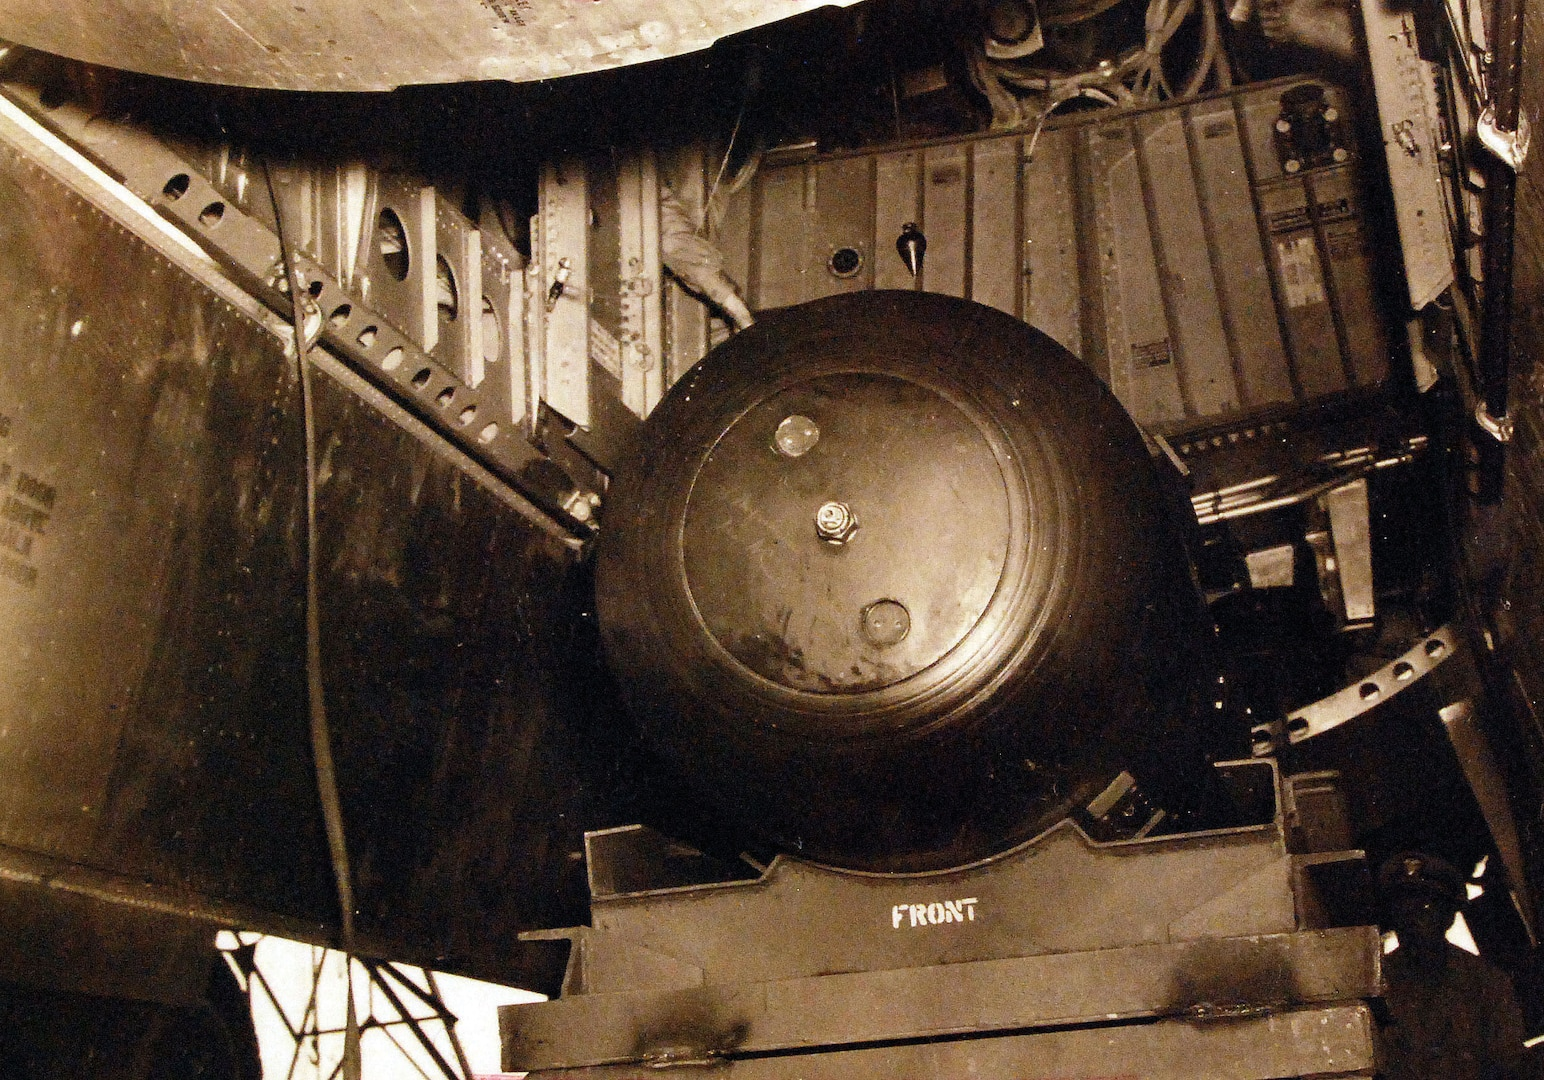 """Atomic bomb """"Little Boy"""" hoisted into bomb bay of B-29 Superfortress, Enola Gay, Tinian Island, August 1945 (U.S. Navy National Museum)"""